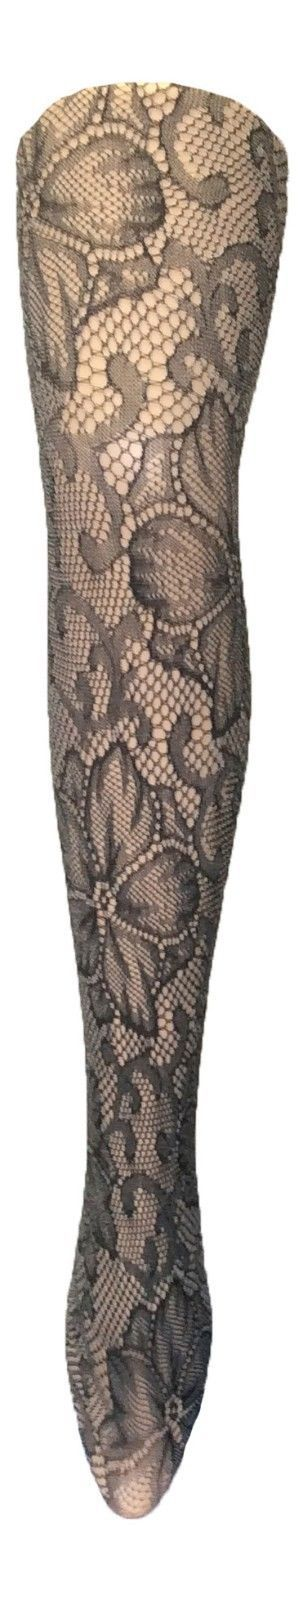 Ladies 40 Denier Designer Tights One Size 8-14 Uk, 36-42 Eur Black Tiger Lilly